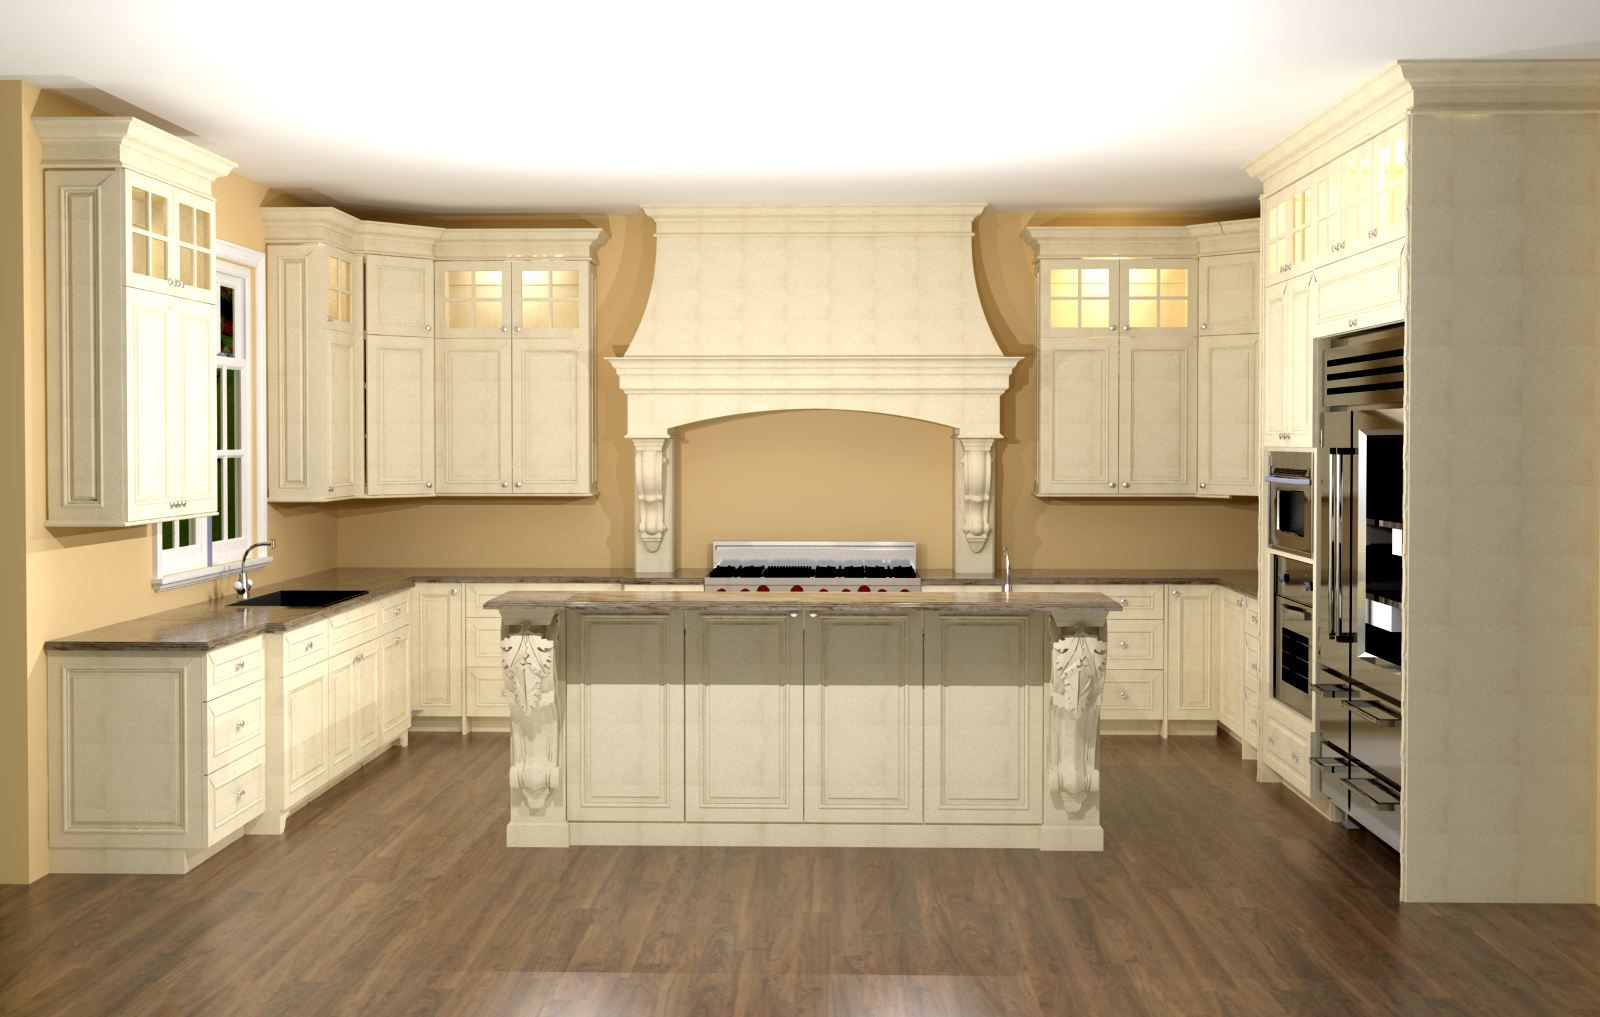 large kitchen with custom hood features large enkeboll corbels on island - Large Kitchen Layouts